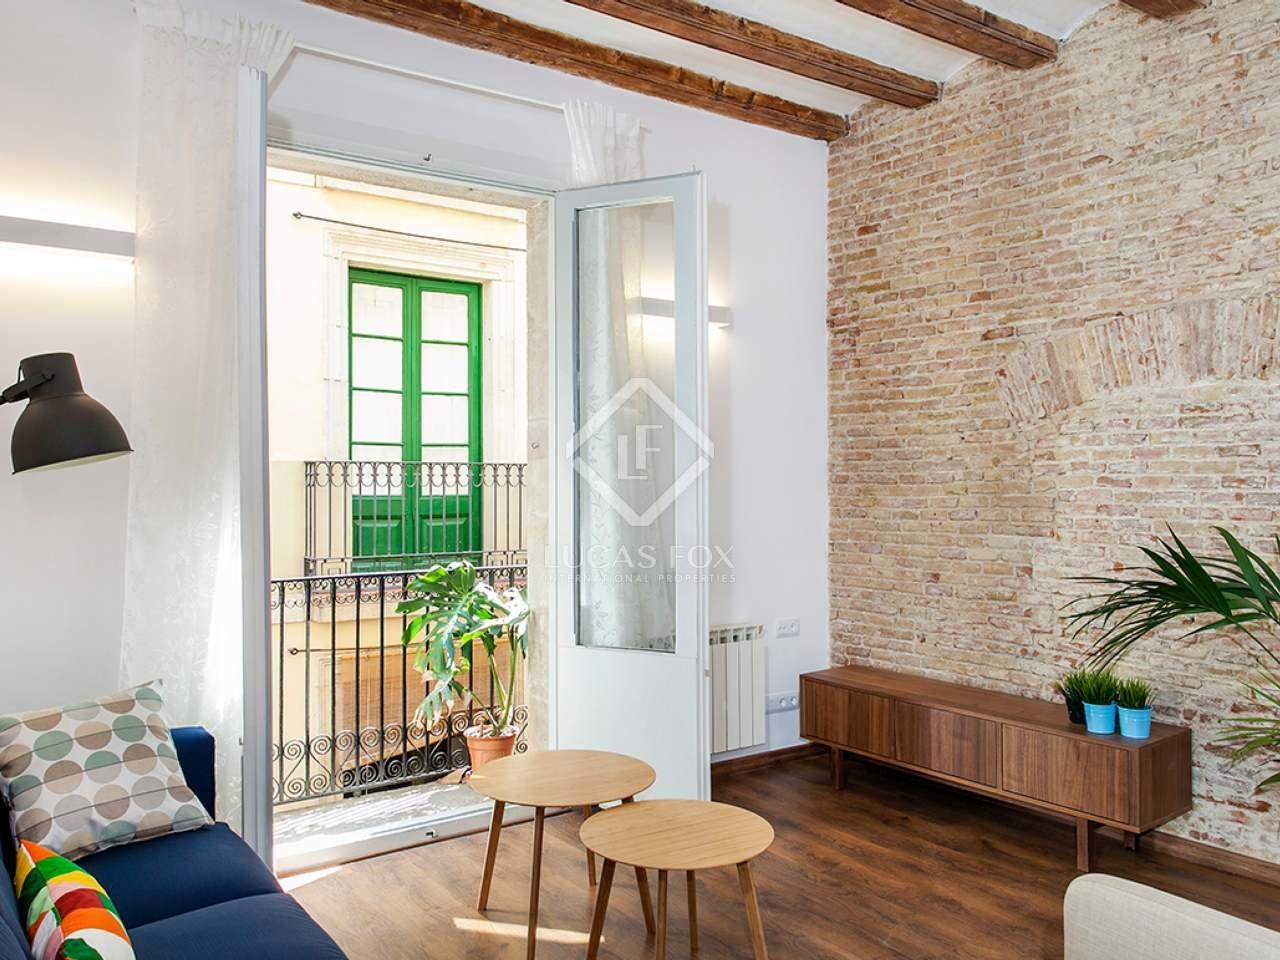 Apartment Undergoing Renovation Buy Barcelona